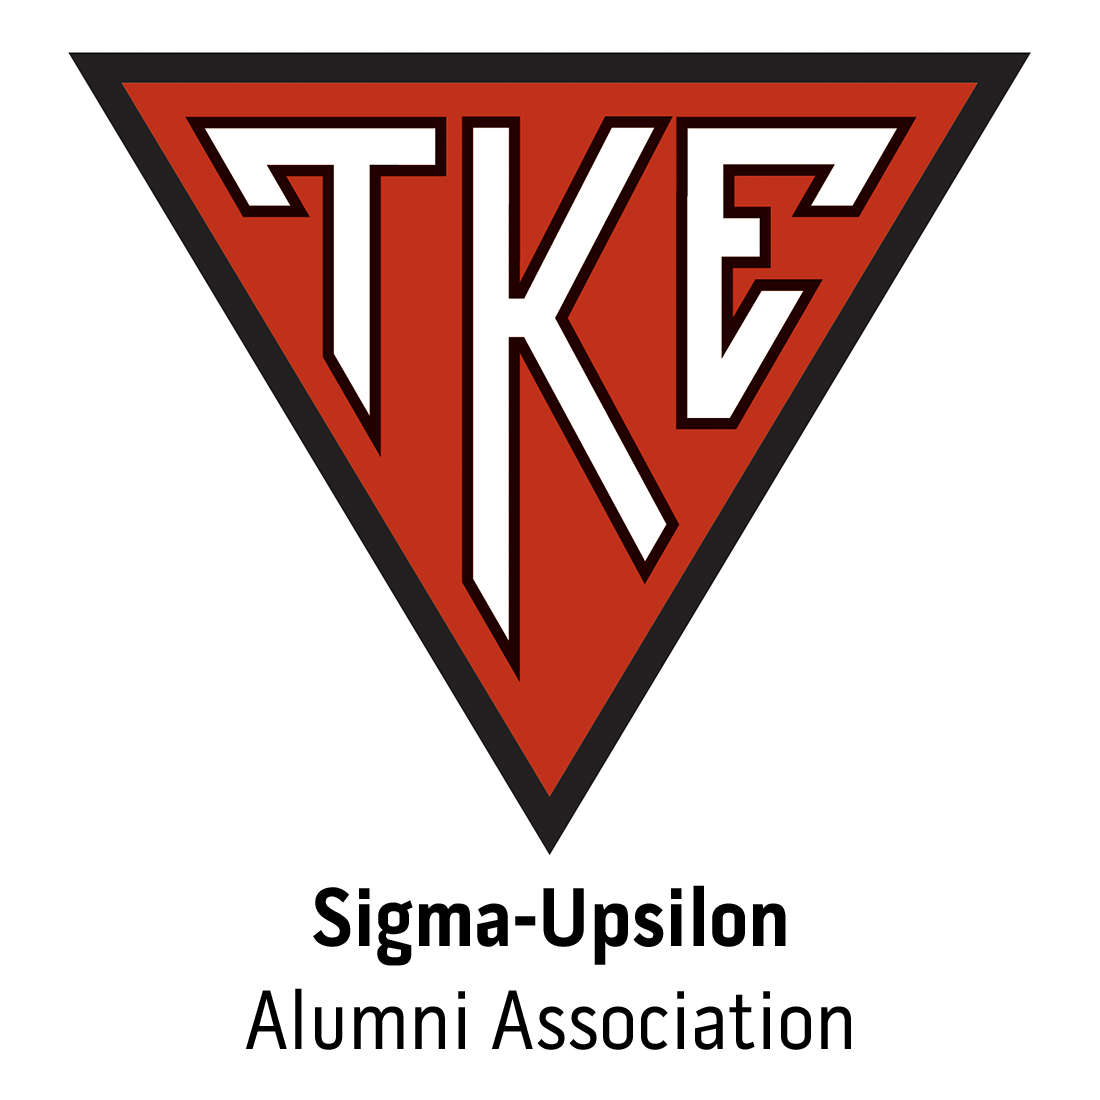 Sigma-Upsilon Alumni Association for Ramapo College of New Jersey